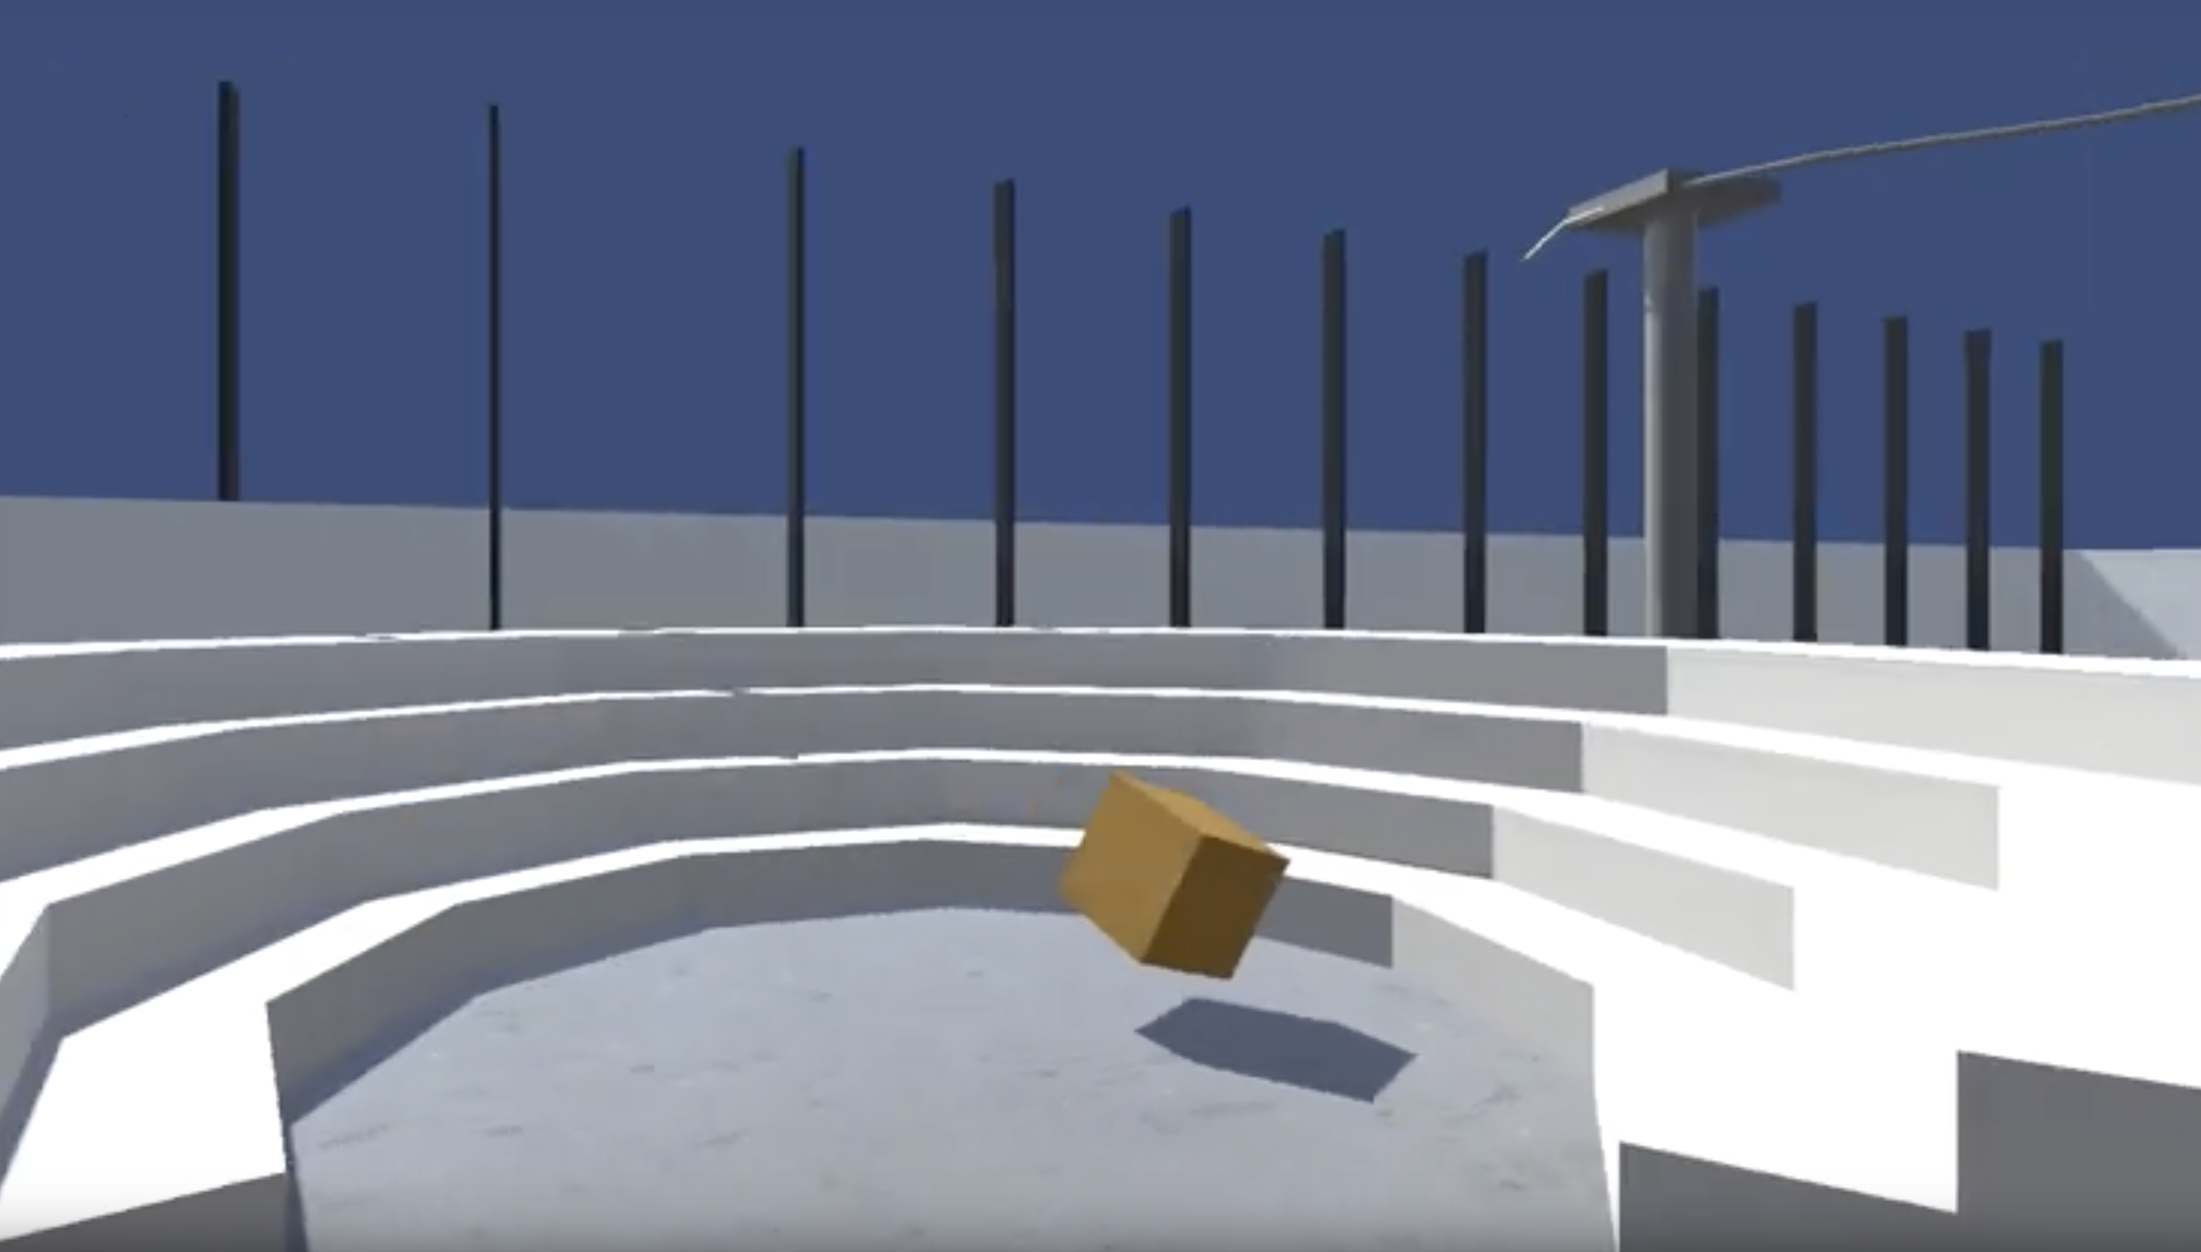 Exploring virtual worlds with reinforcement learning